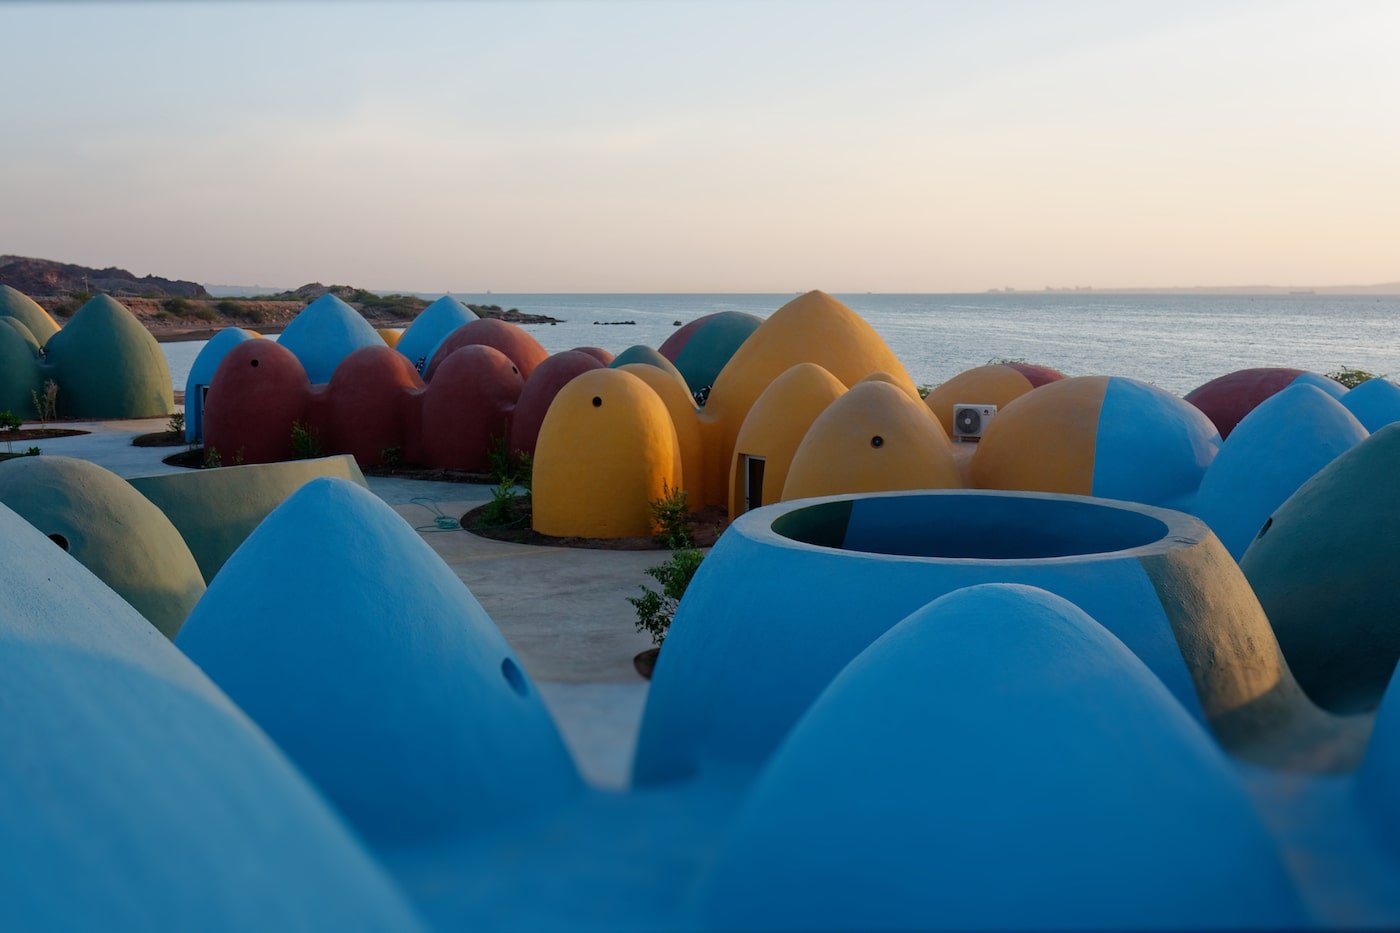 Colourful rammed earth domes